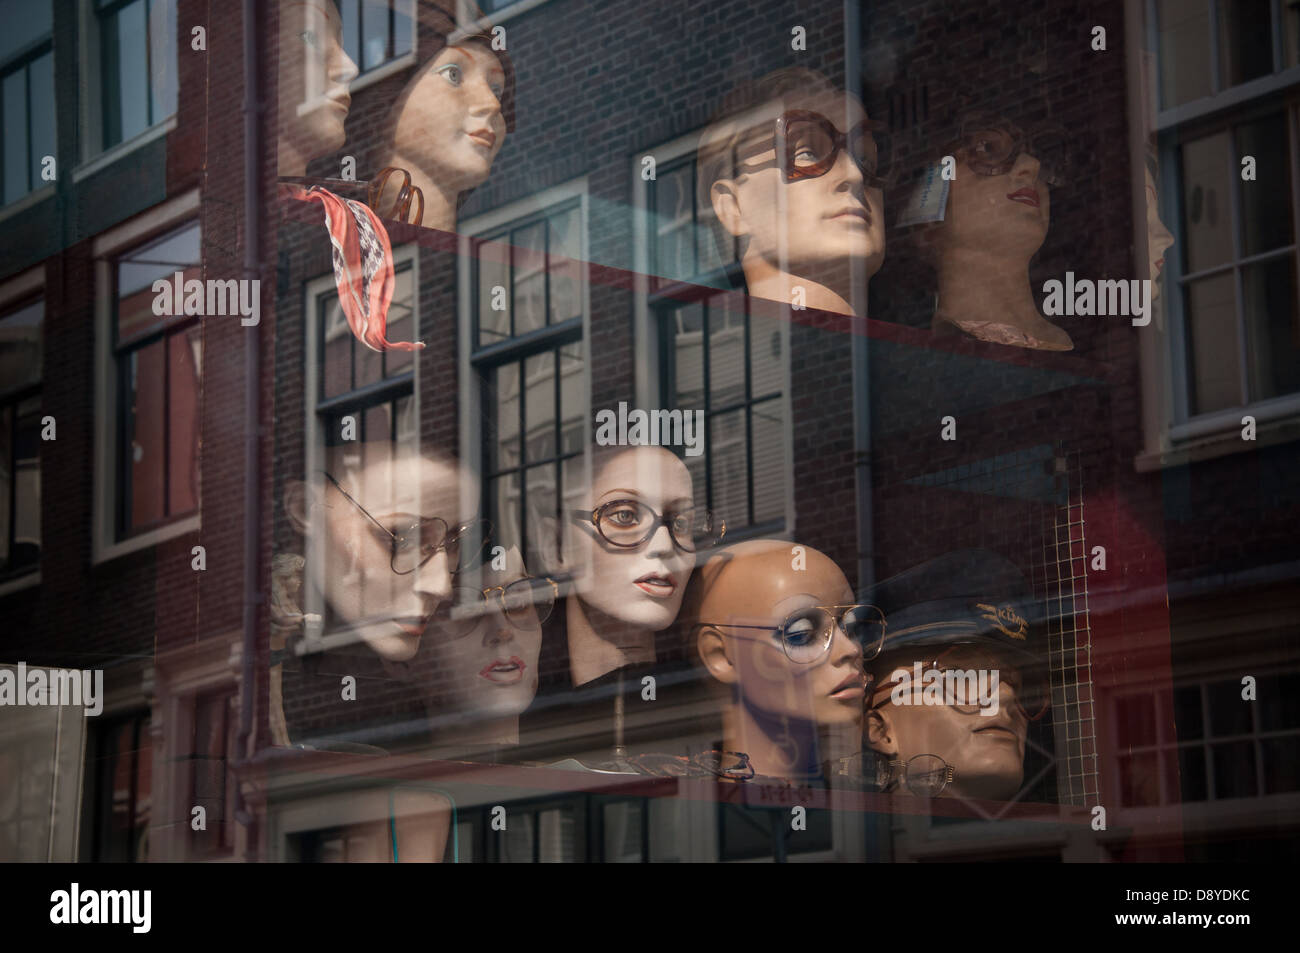 Mannequin heads on display in a junk shop window in Amsterdam. - Stock Image